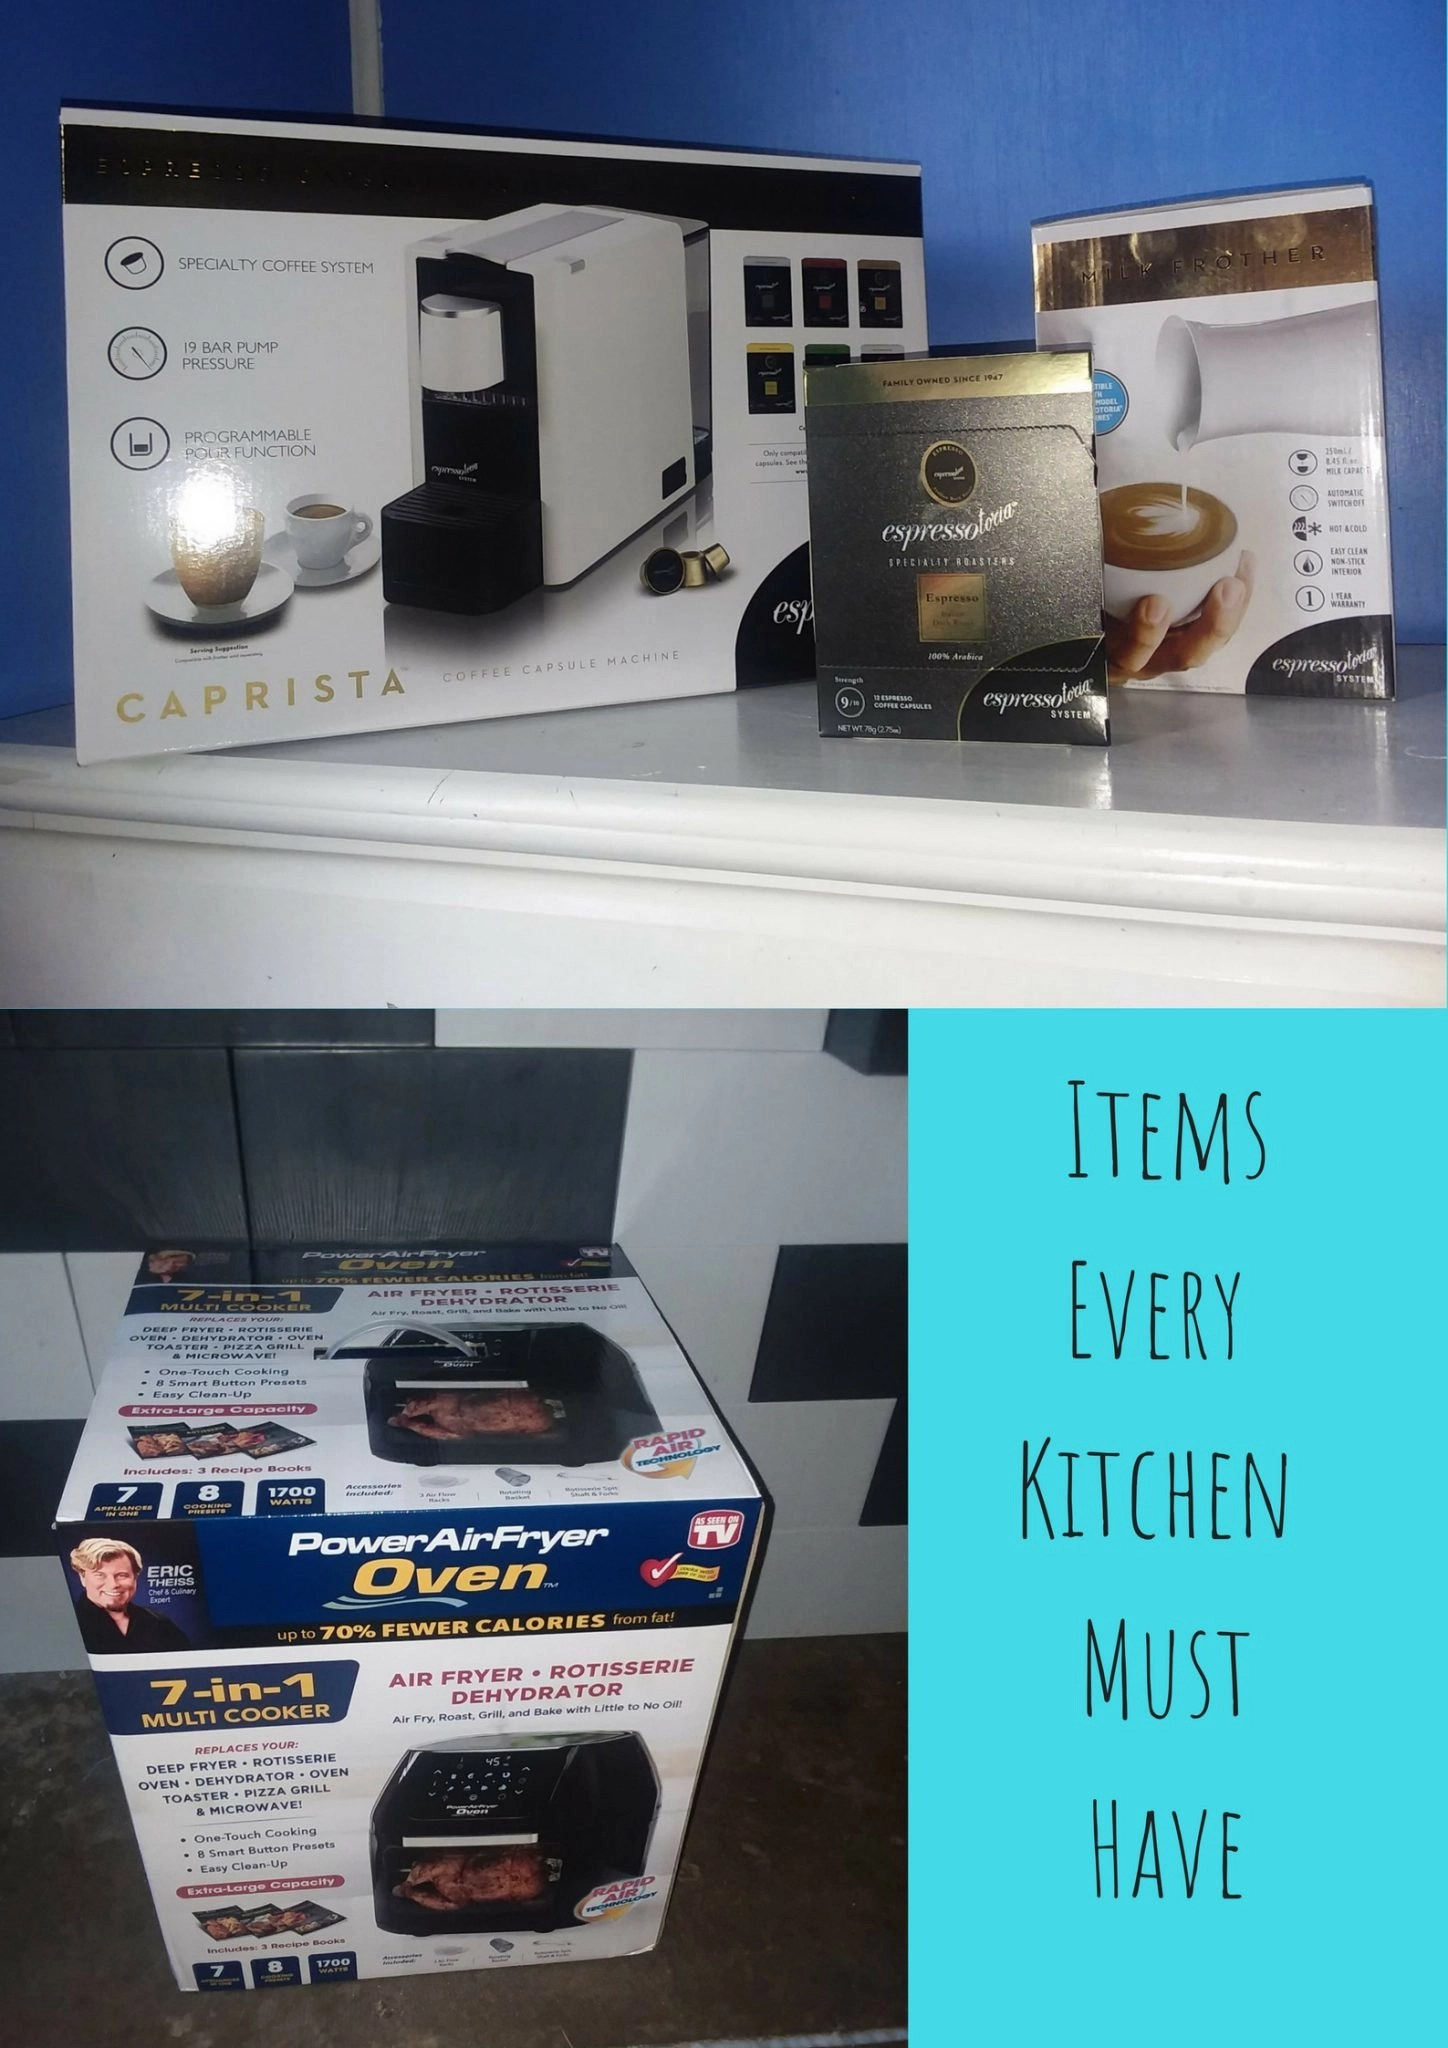 Items Every Kitchen Must Have